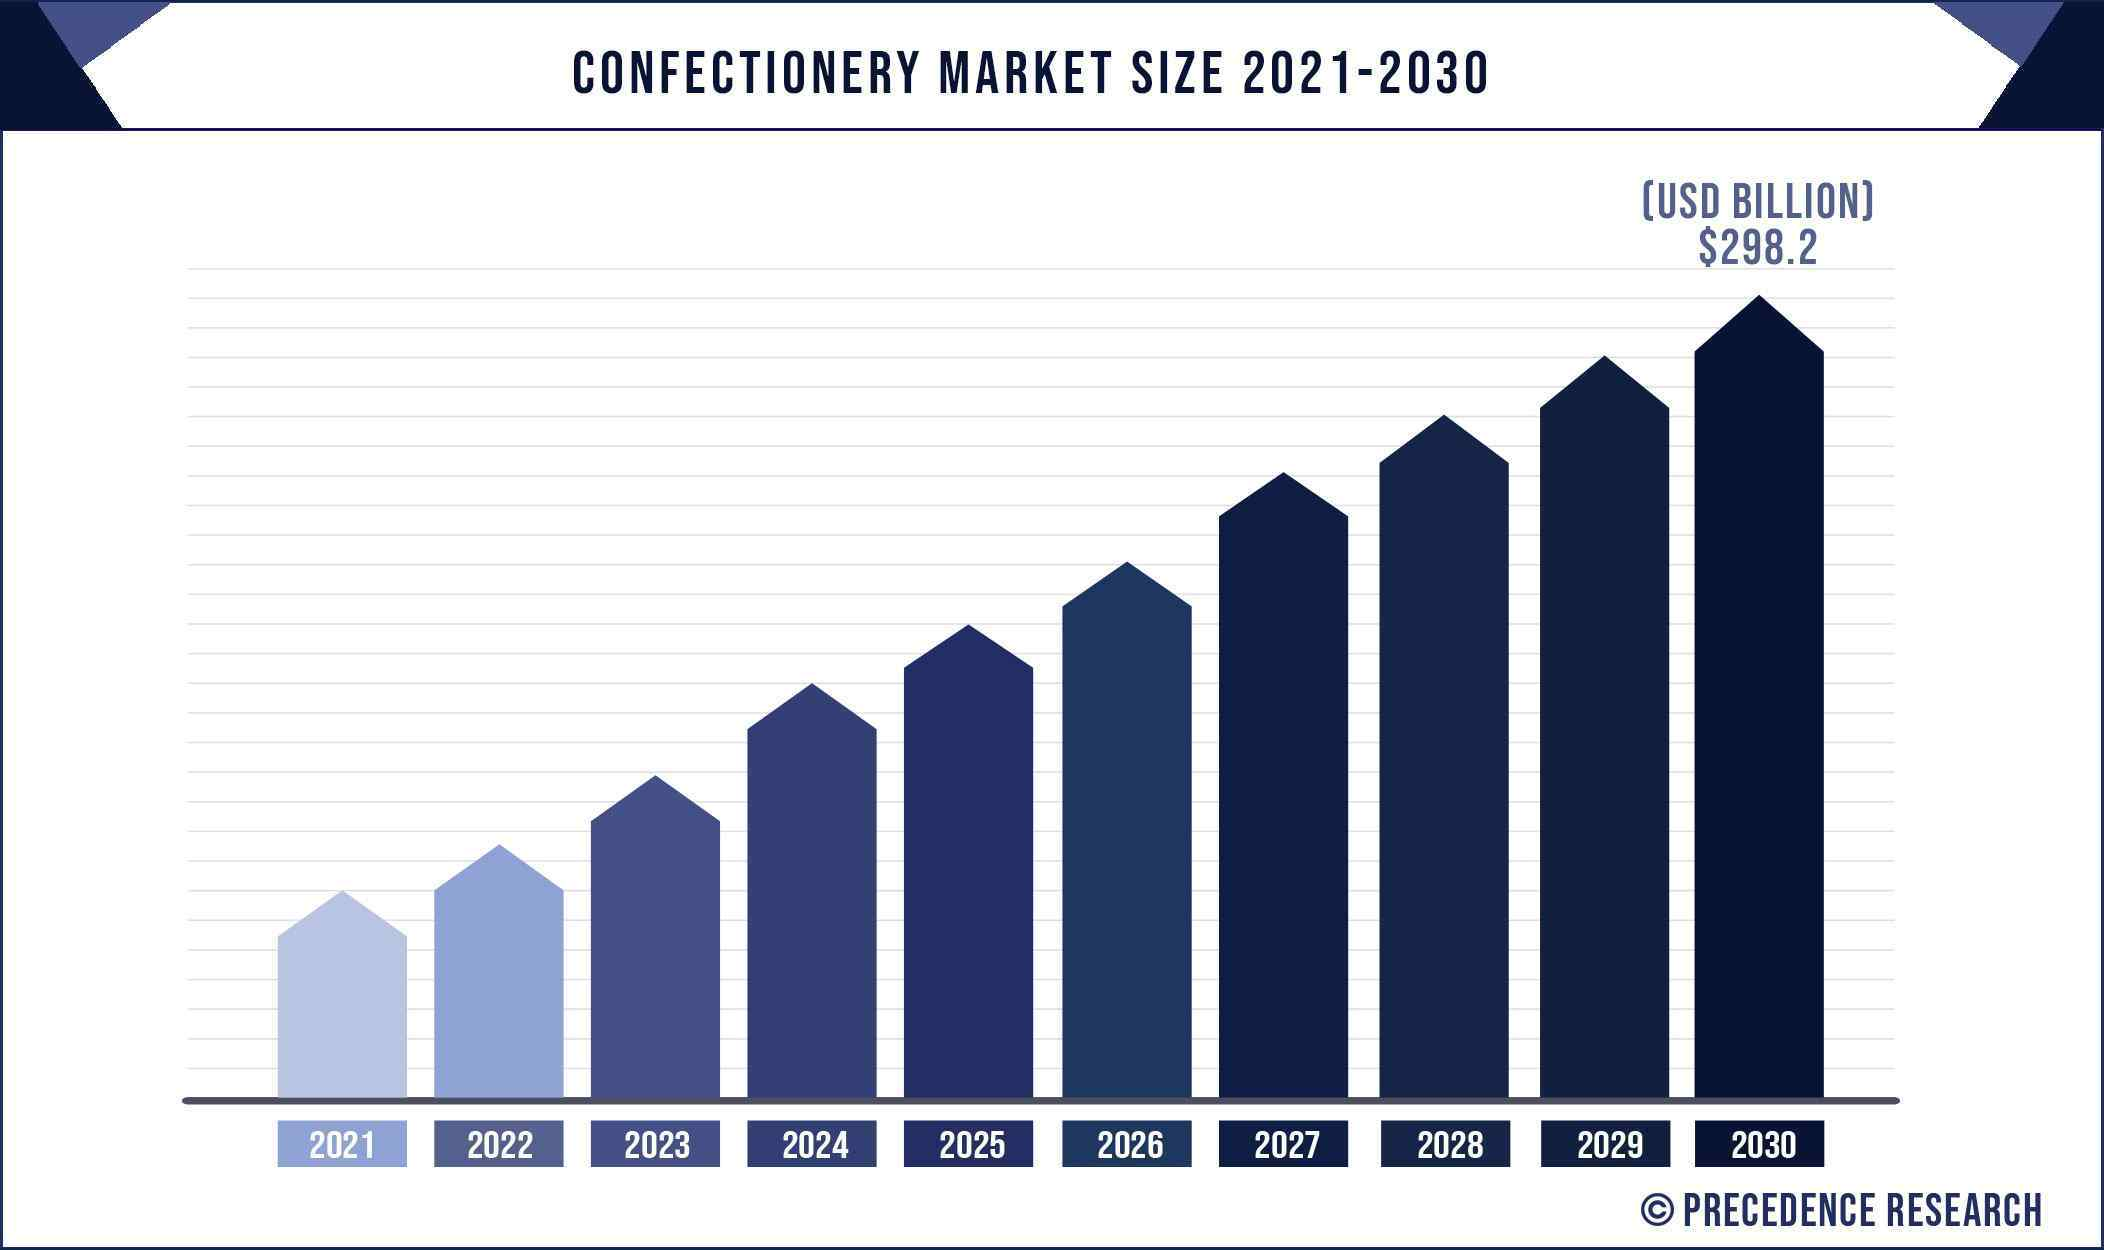 Confectionery Market Size 2021 to 2030